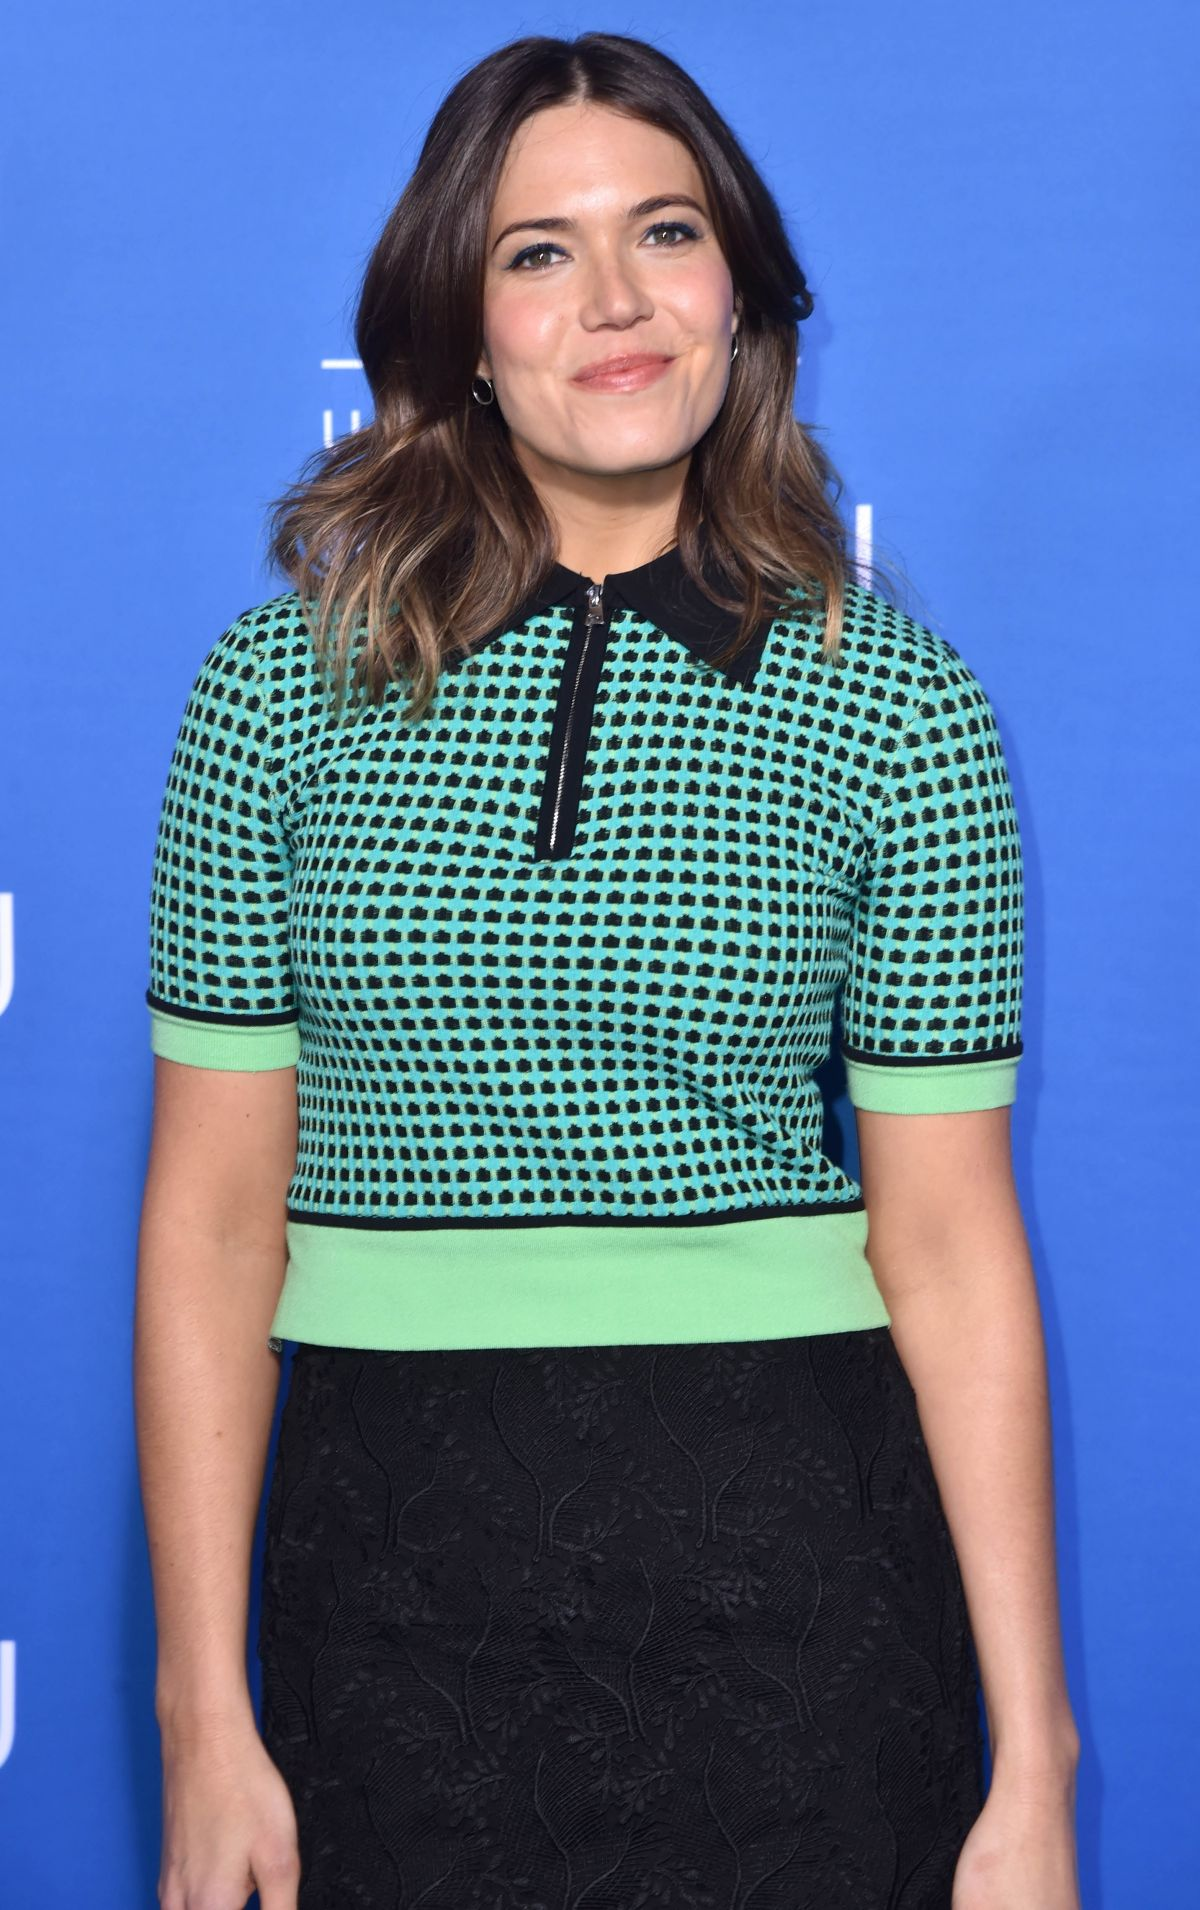 Mandy Moore At NBCUniversal Upfront in New York City   mandy-moore-at-nbcuniversal-upfront-in-new-york-city_1